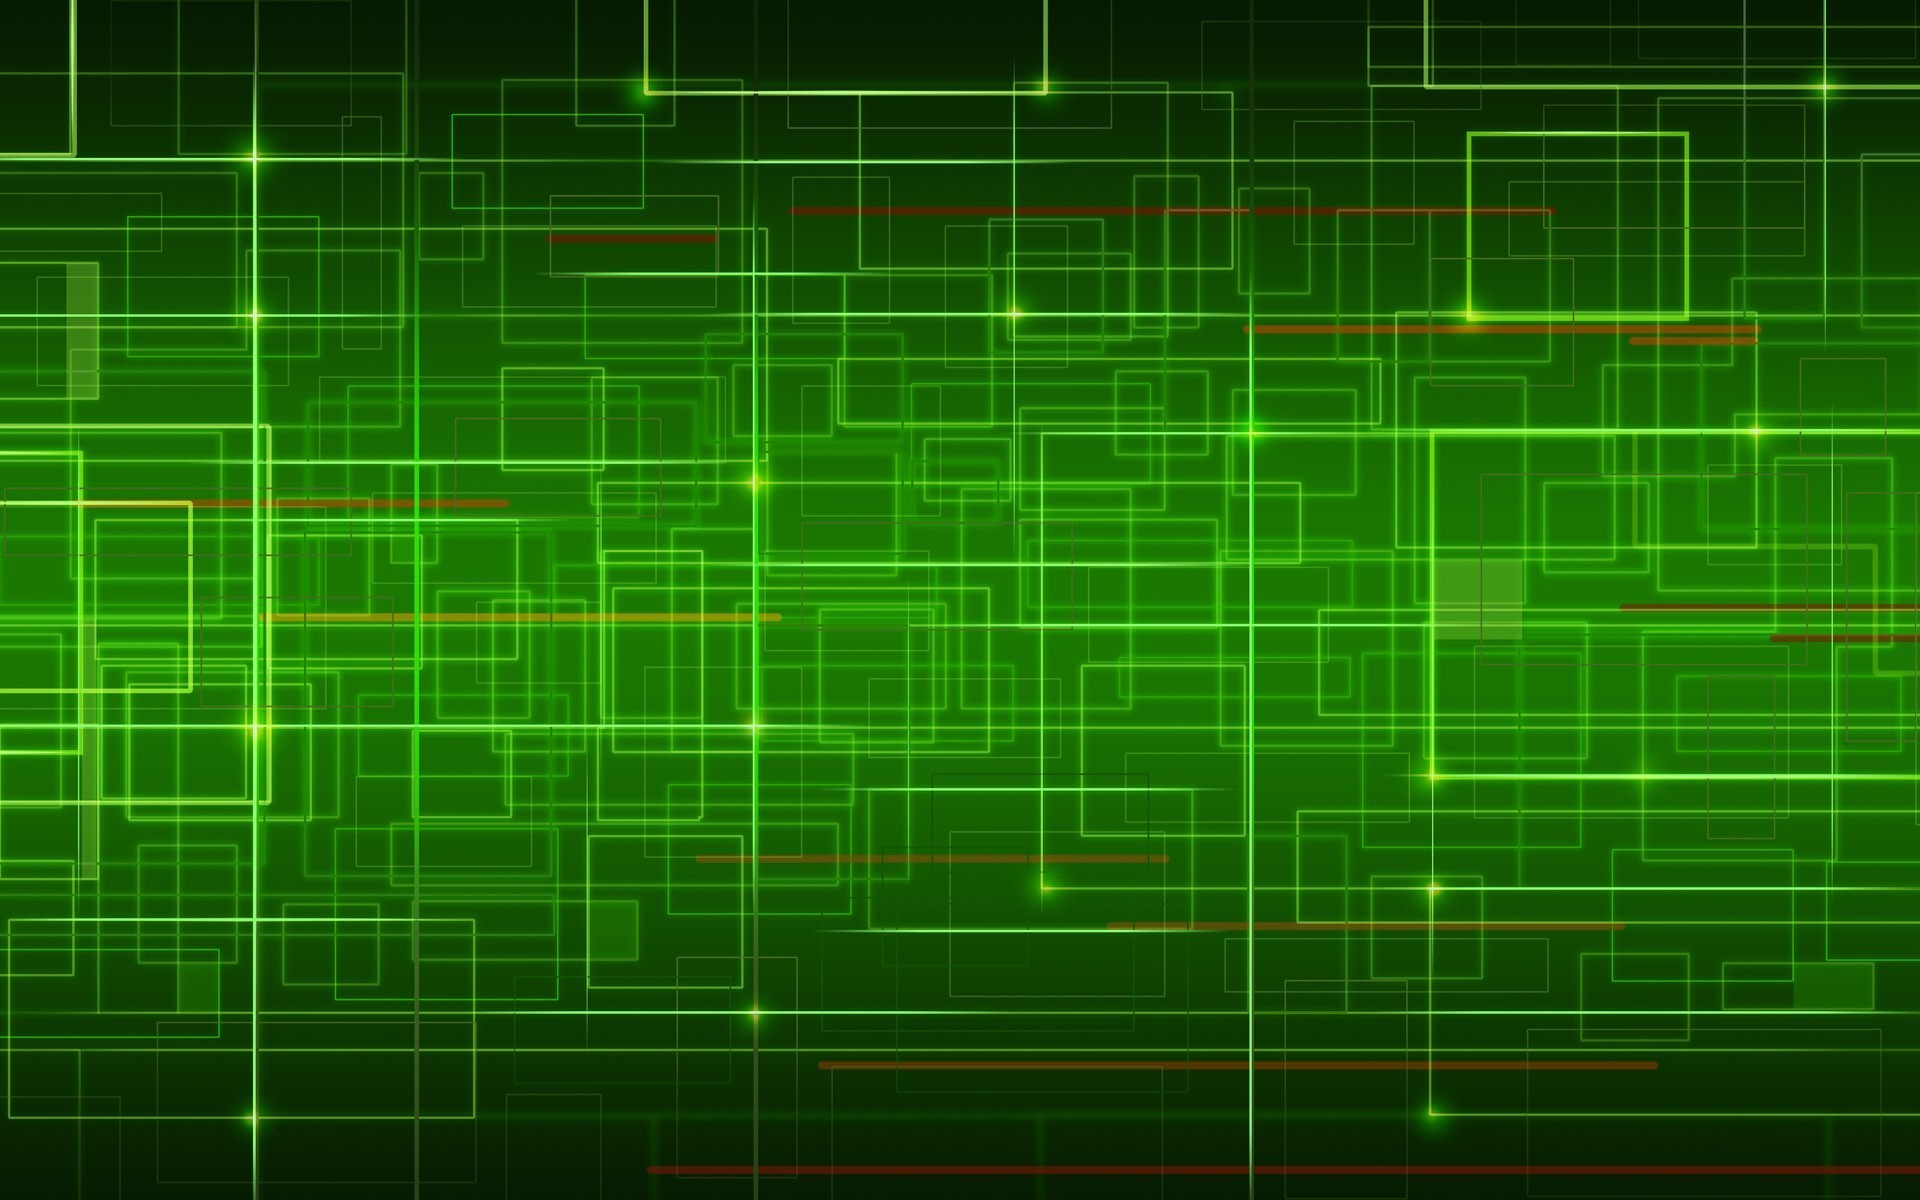 Green green network wallpaper